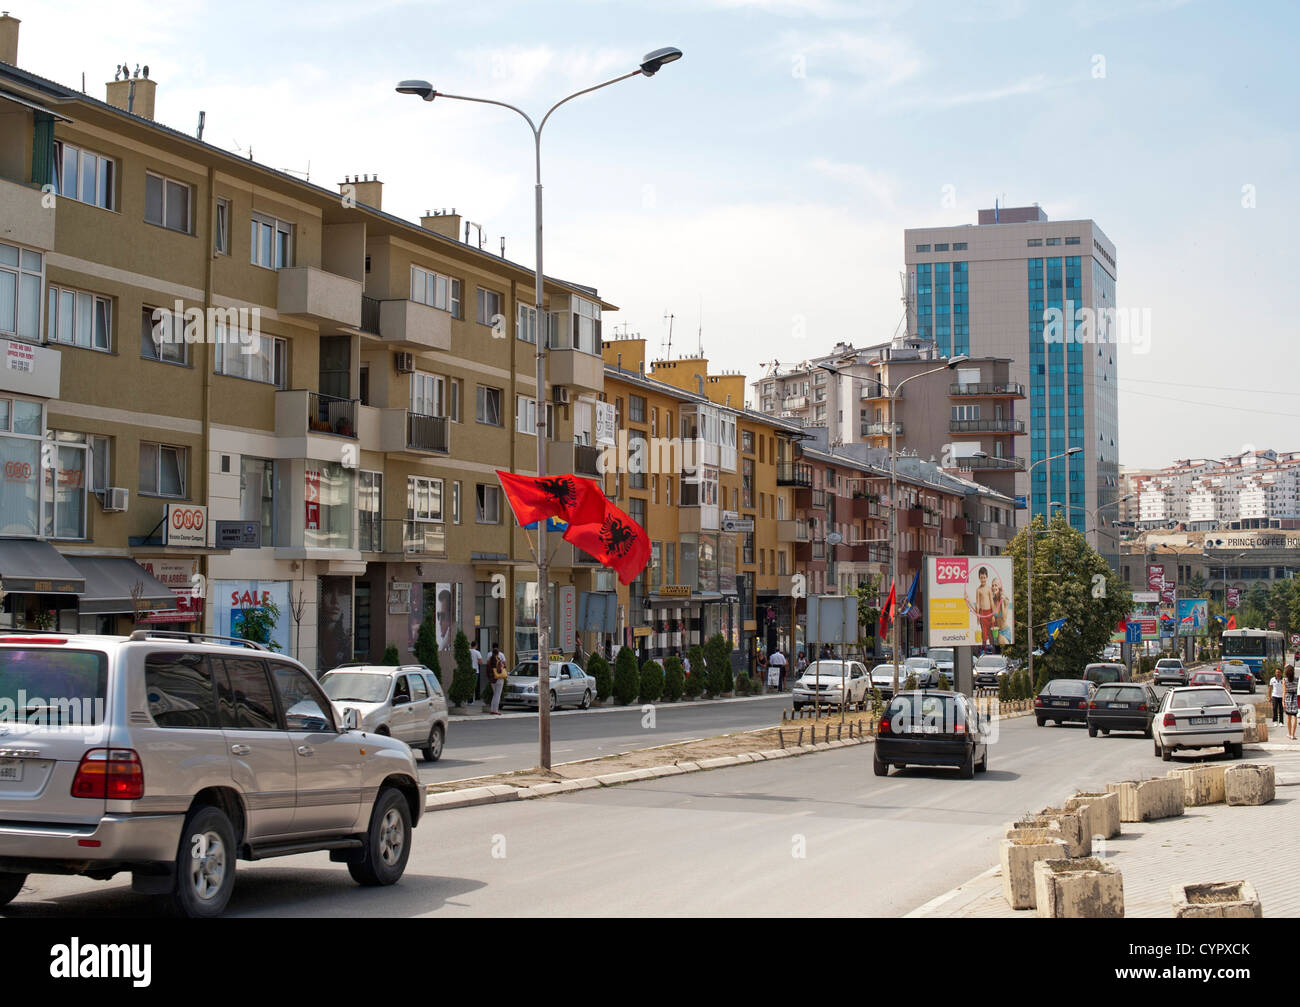 Garibaldi street in Pristina, the capital of the Republic of Kosovo. - Stock Image